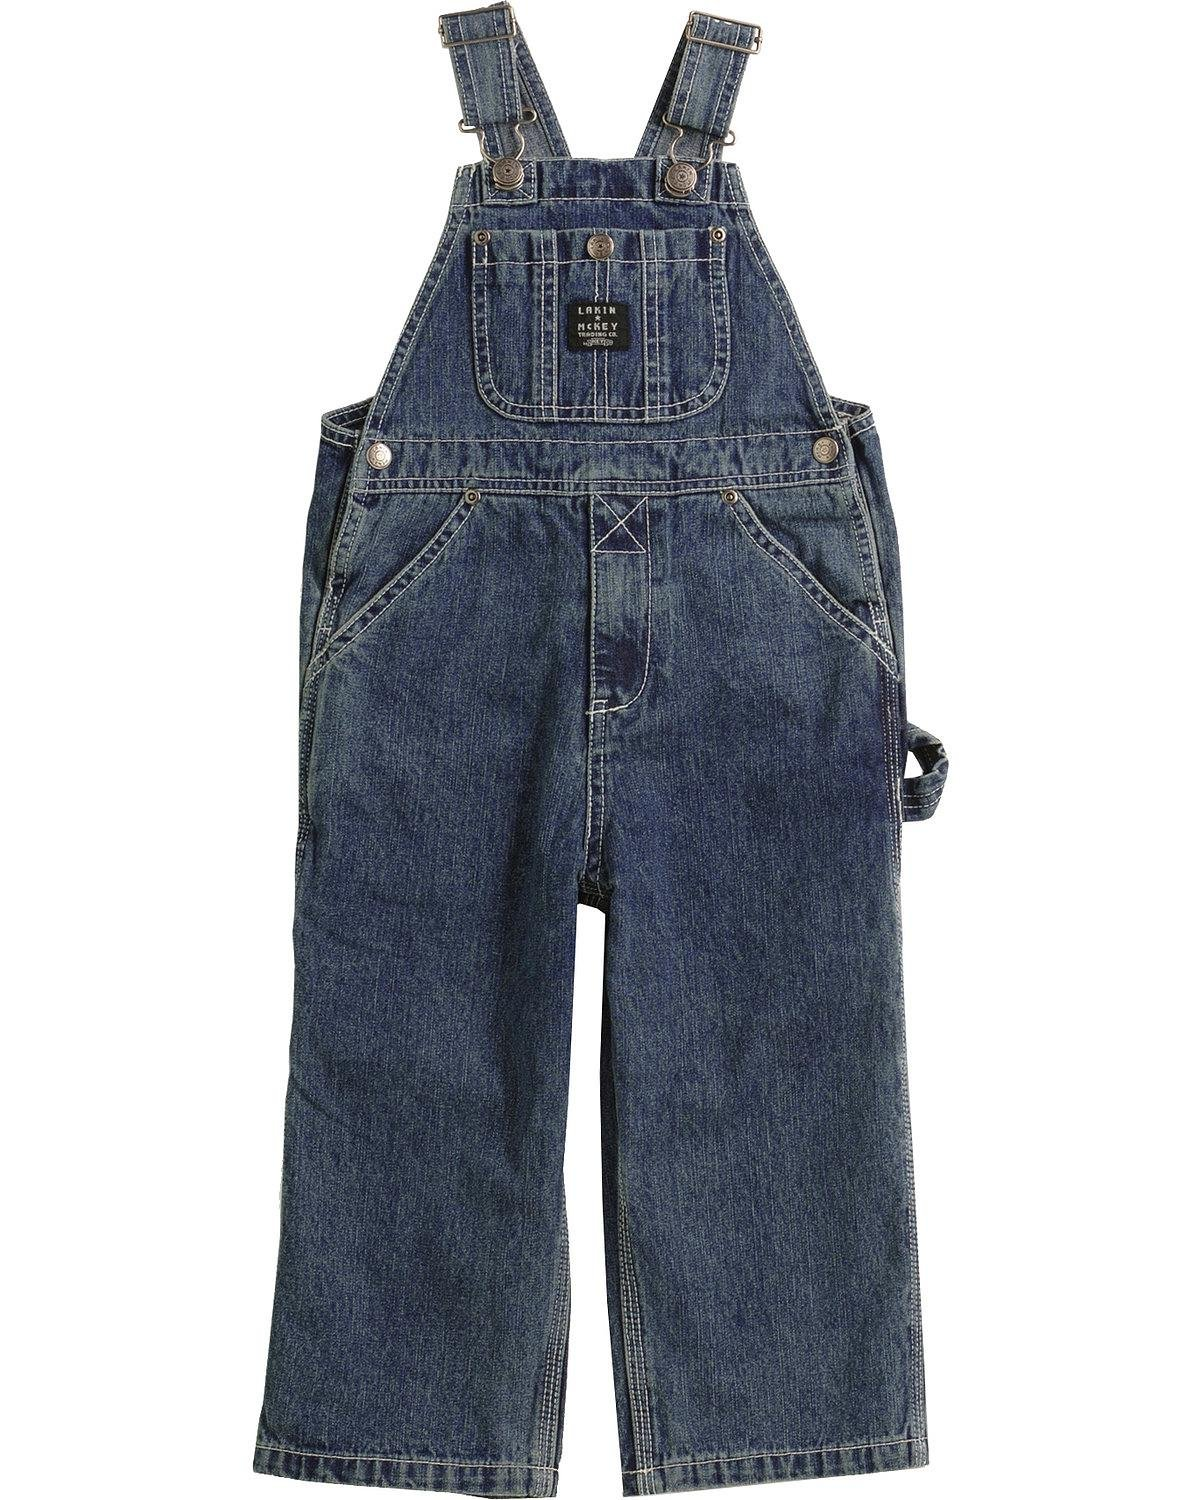 d5c3b8d14ede Get Quotations · Key Toddler-Boys  Industries Denim Overalls 2T-4T Denim 2T